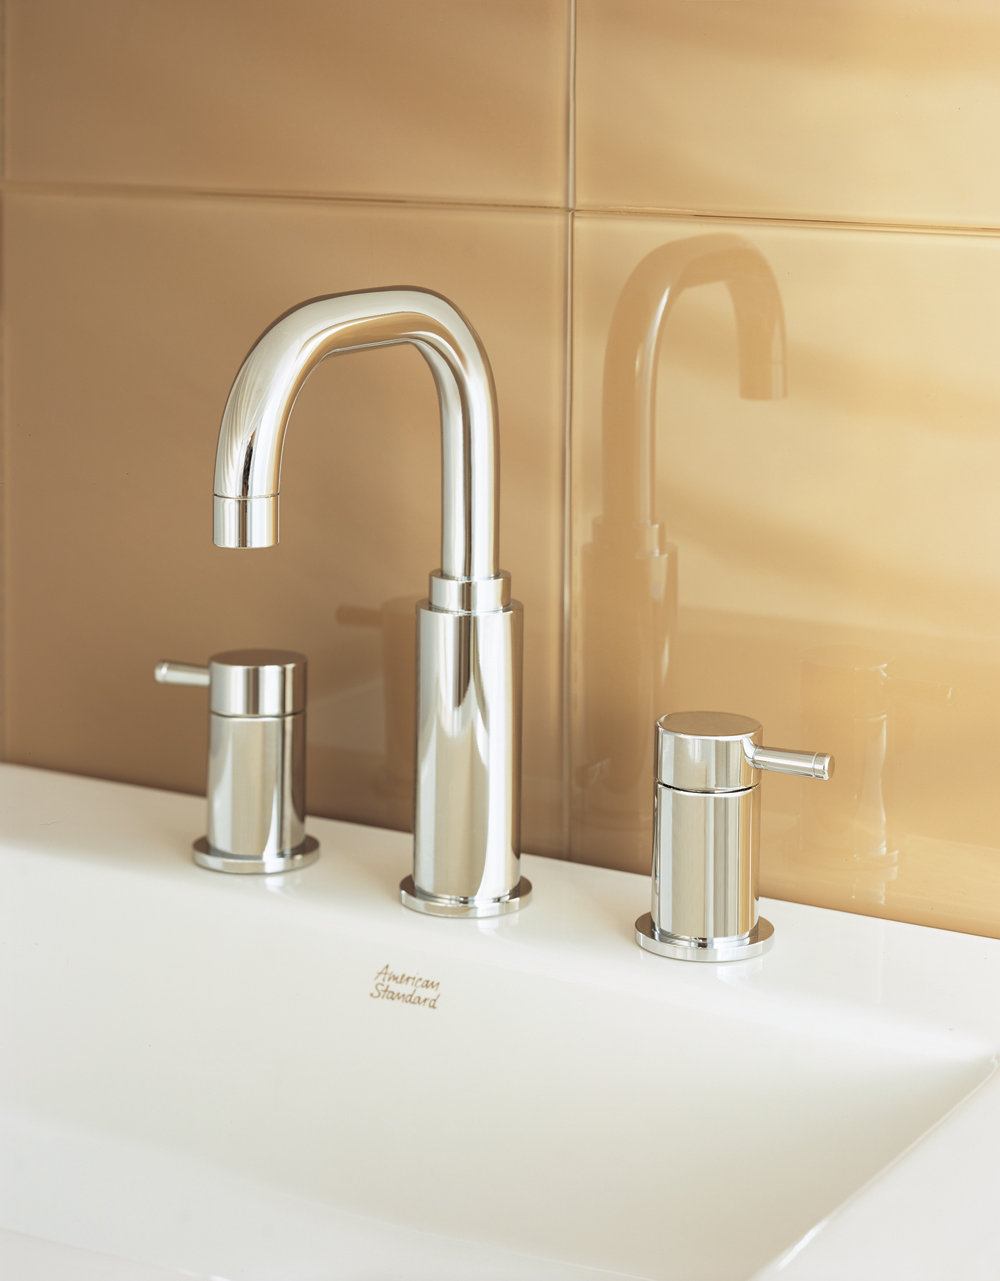 American Standard Serin Two Handle Widespread Lavatory Faucet Wi